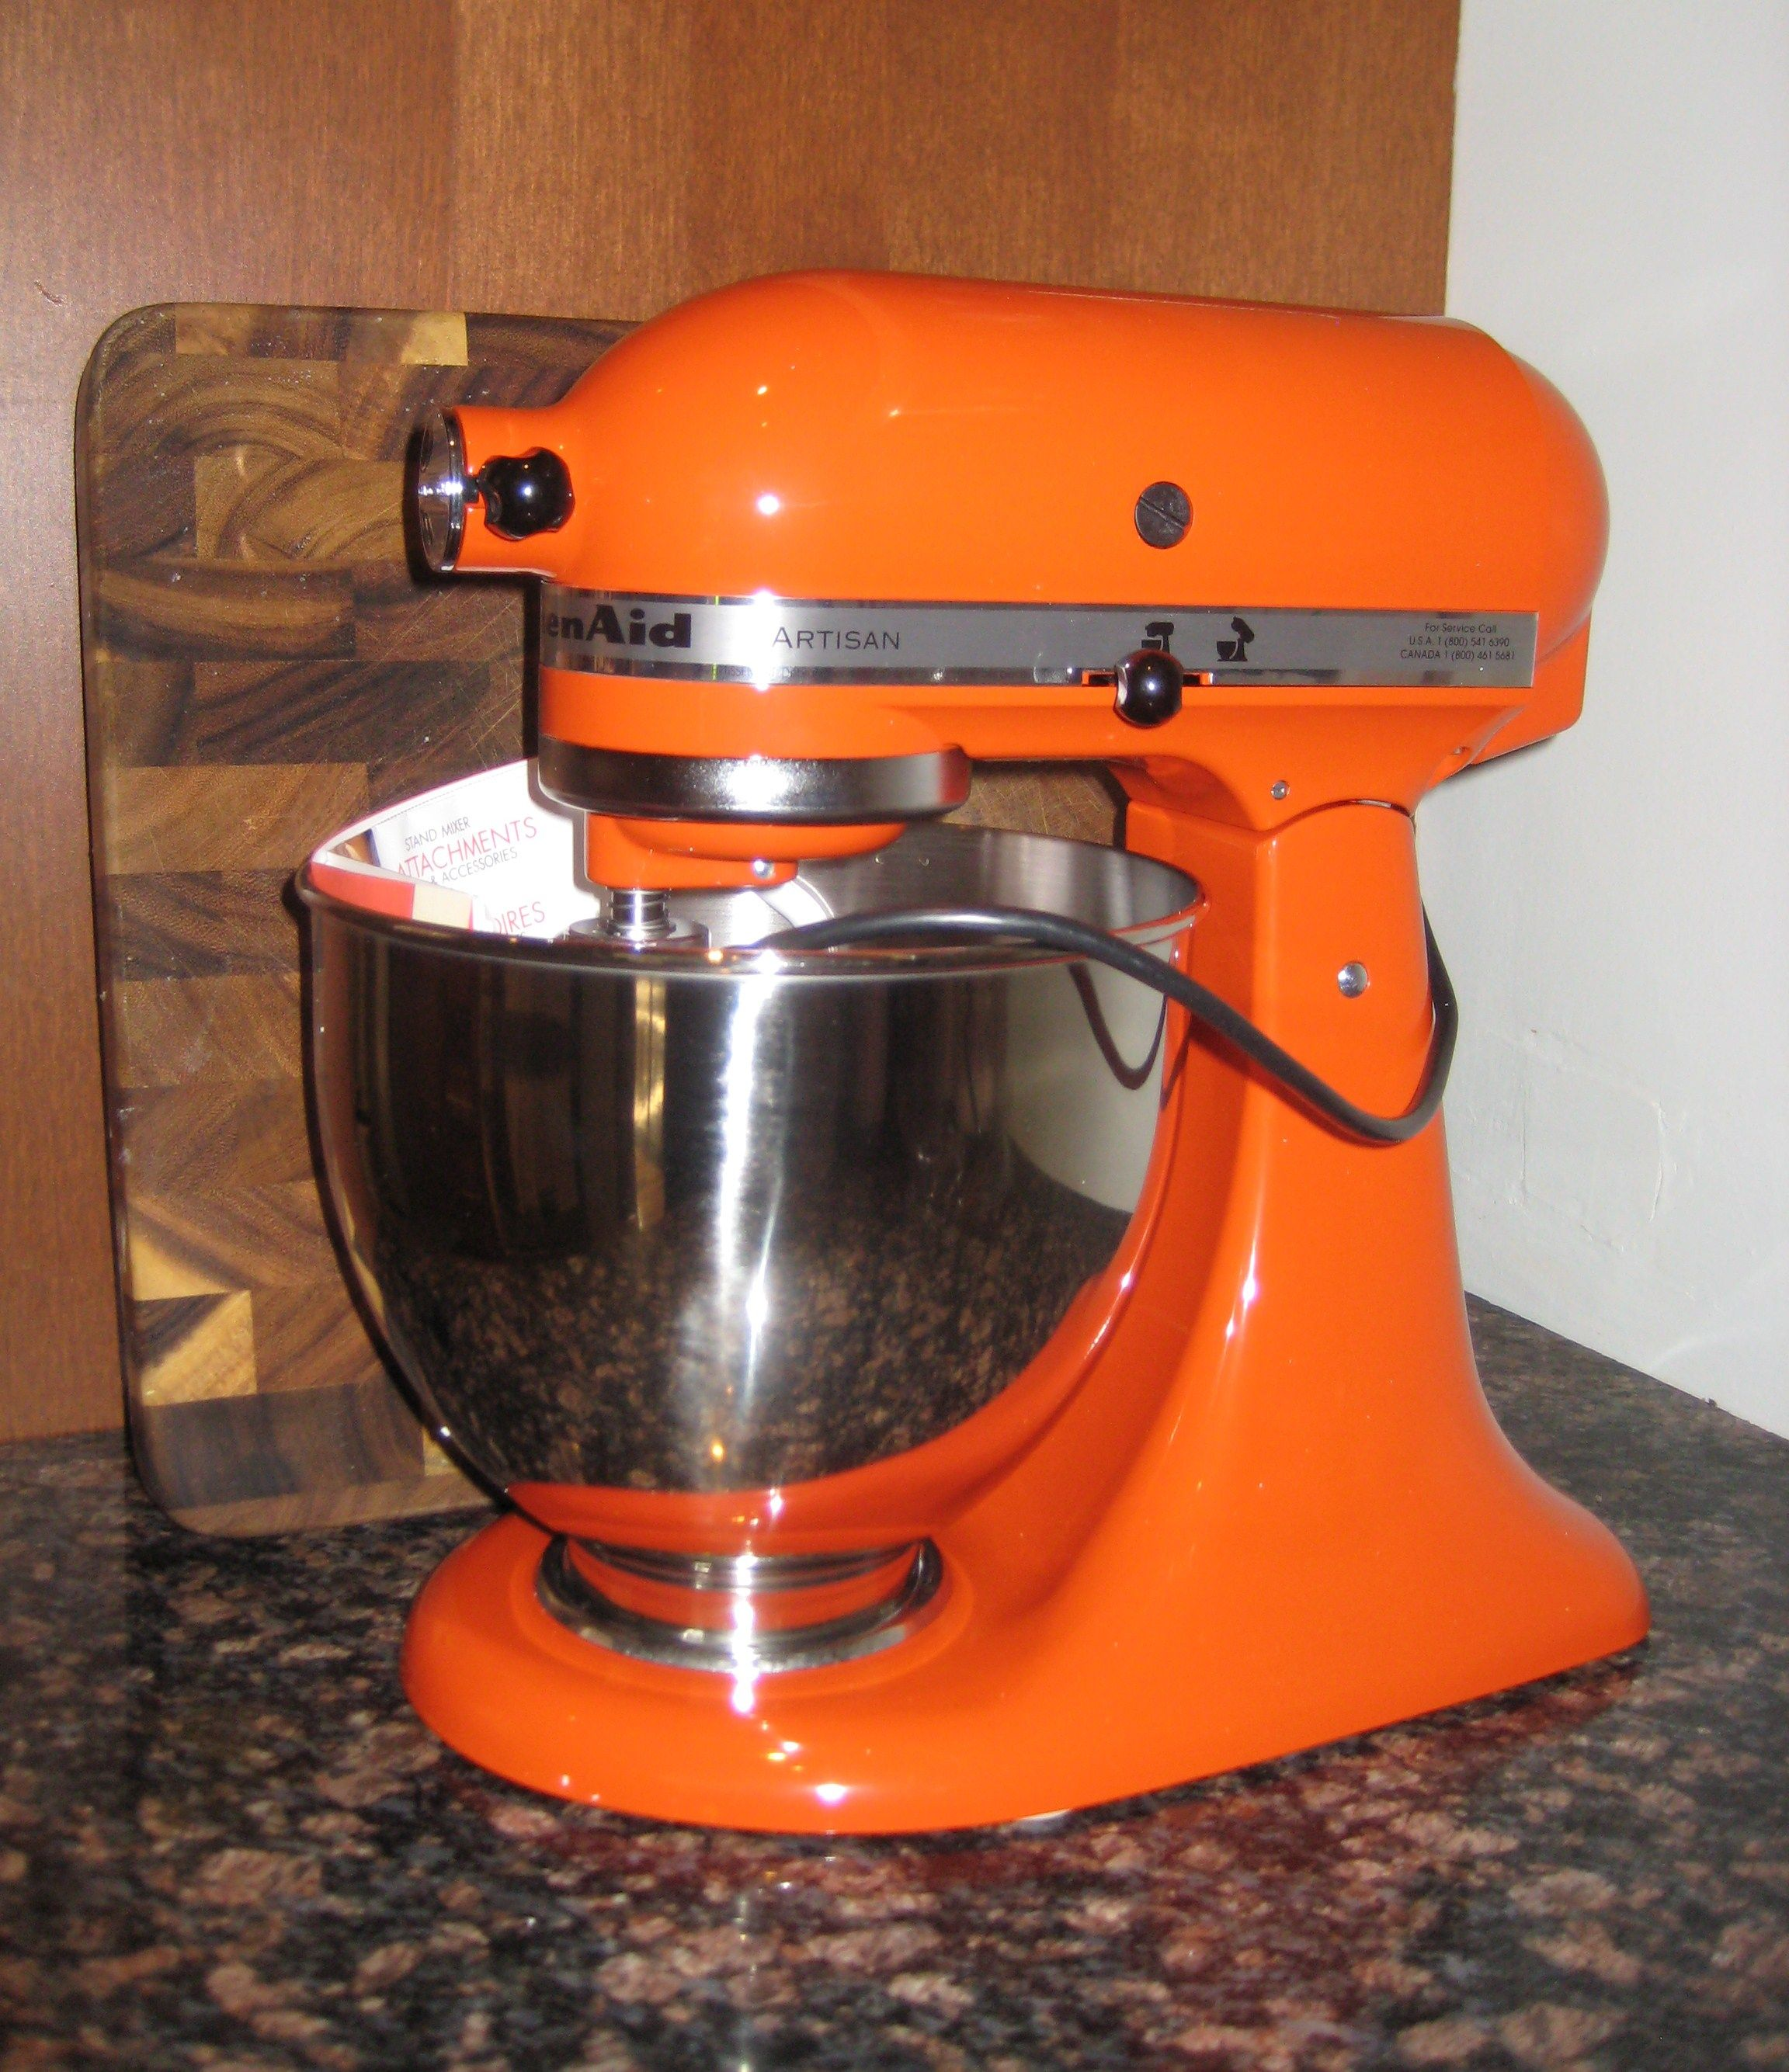 A Kitchenaid Mixer In Orange